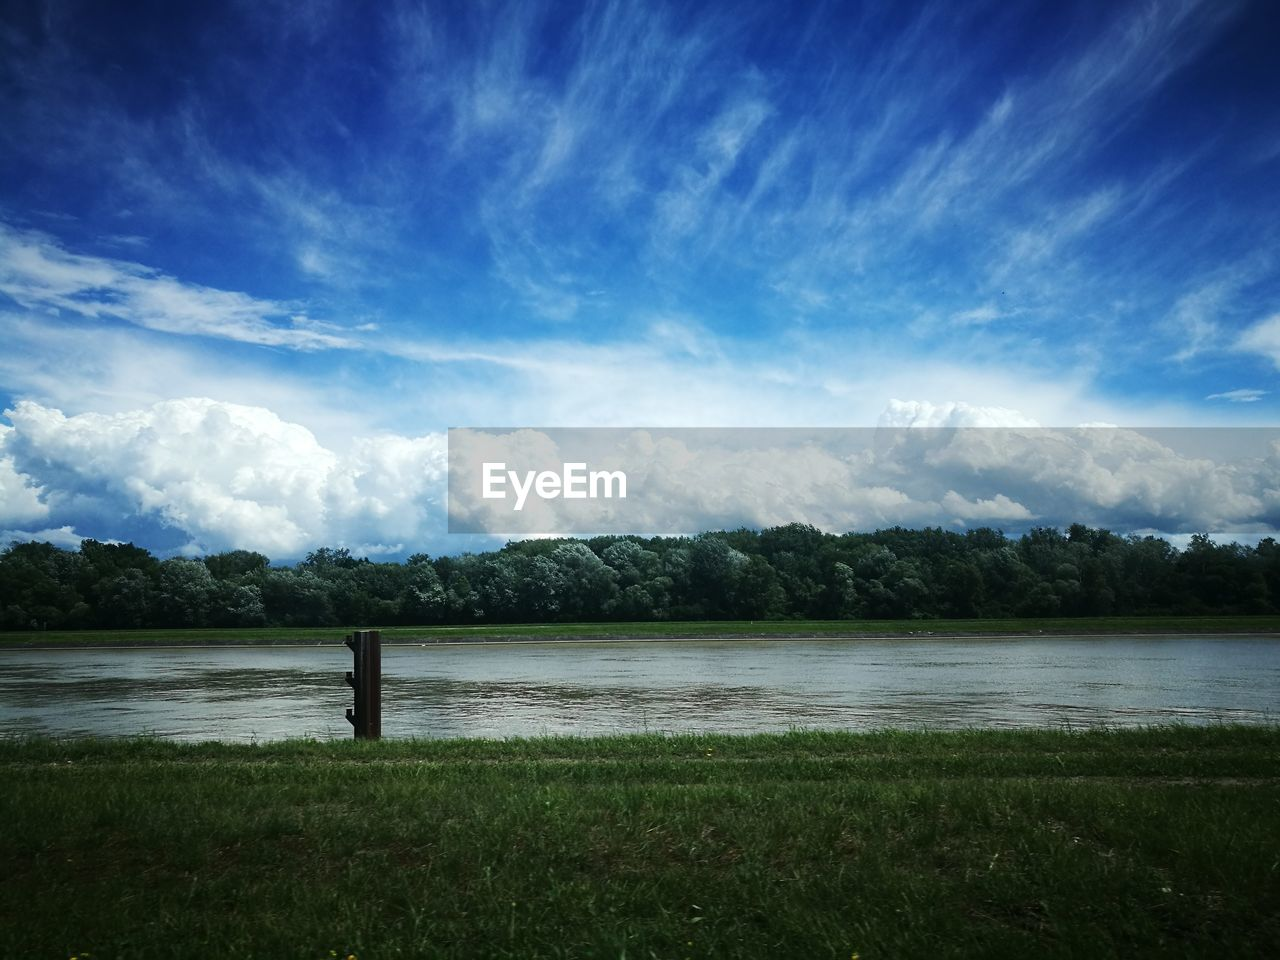 sky, lake, scenics, cloud - sky, tranquility, nature, water, beauty in nature, tranquil scene, no people, landscape, grass, outdoors, day, mountain, tree